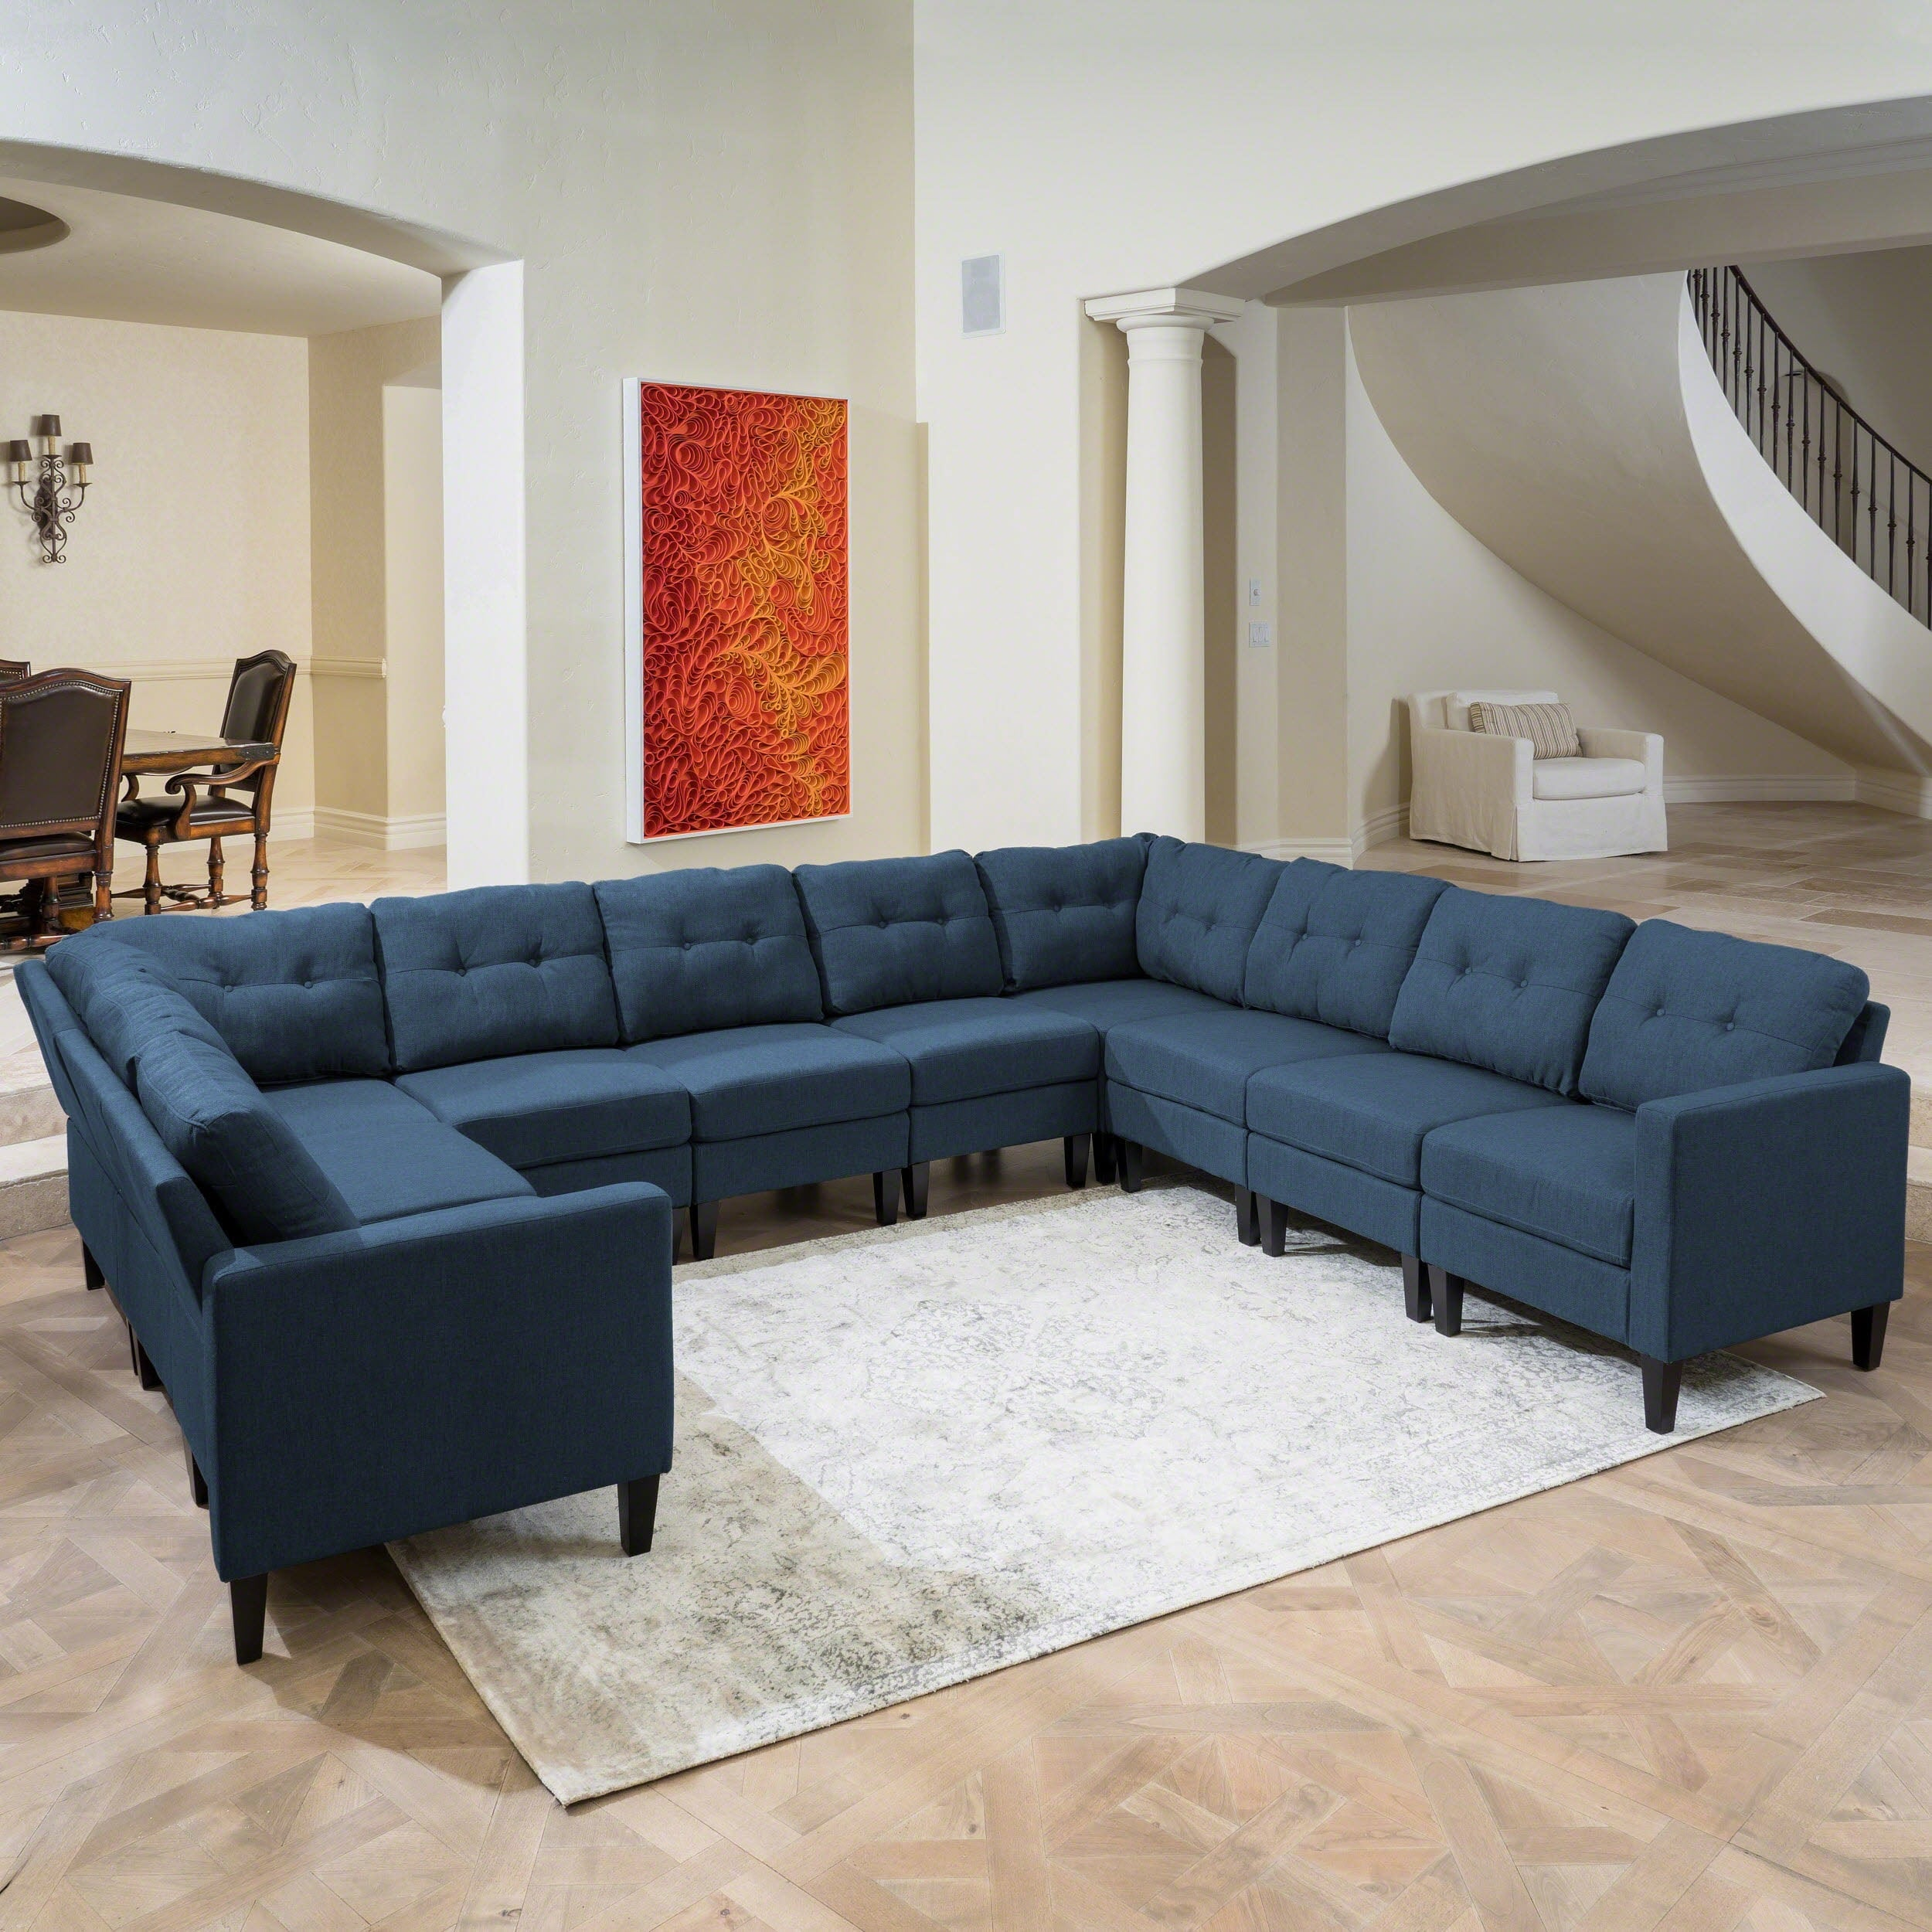 Shop emmie mid century modern 10 piece u shaped sectional sofa set by christopher knight home free shipping today overstock 19538564